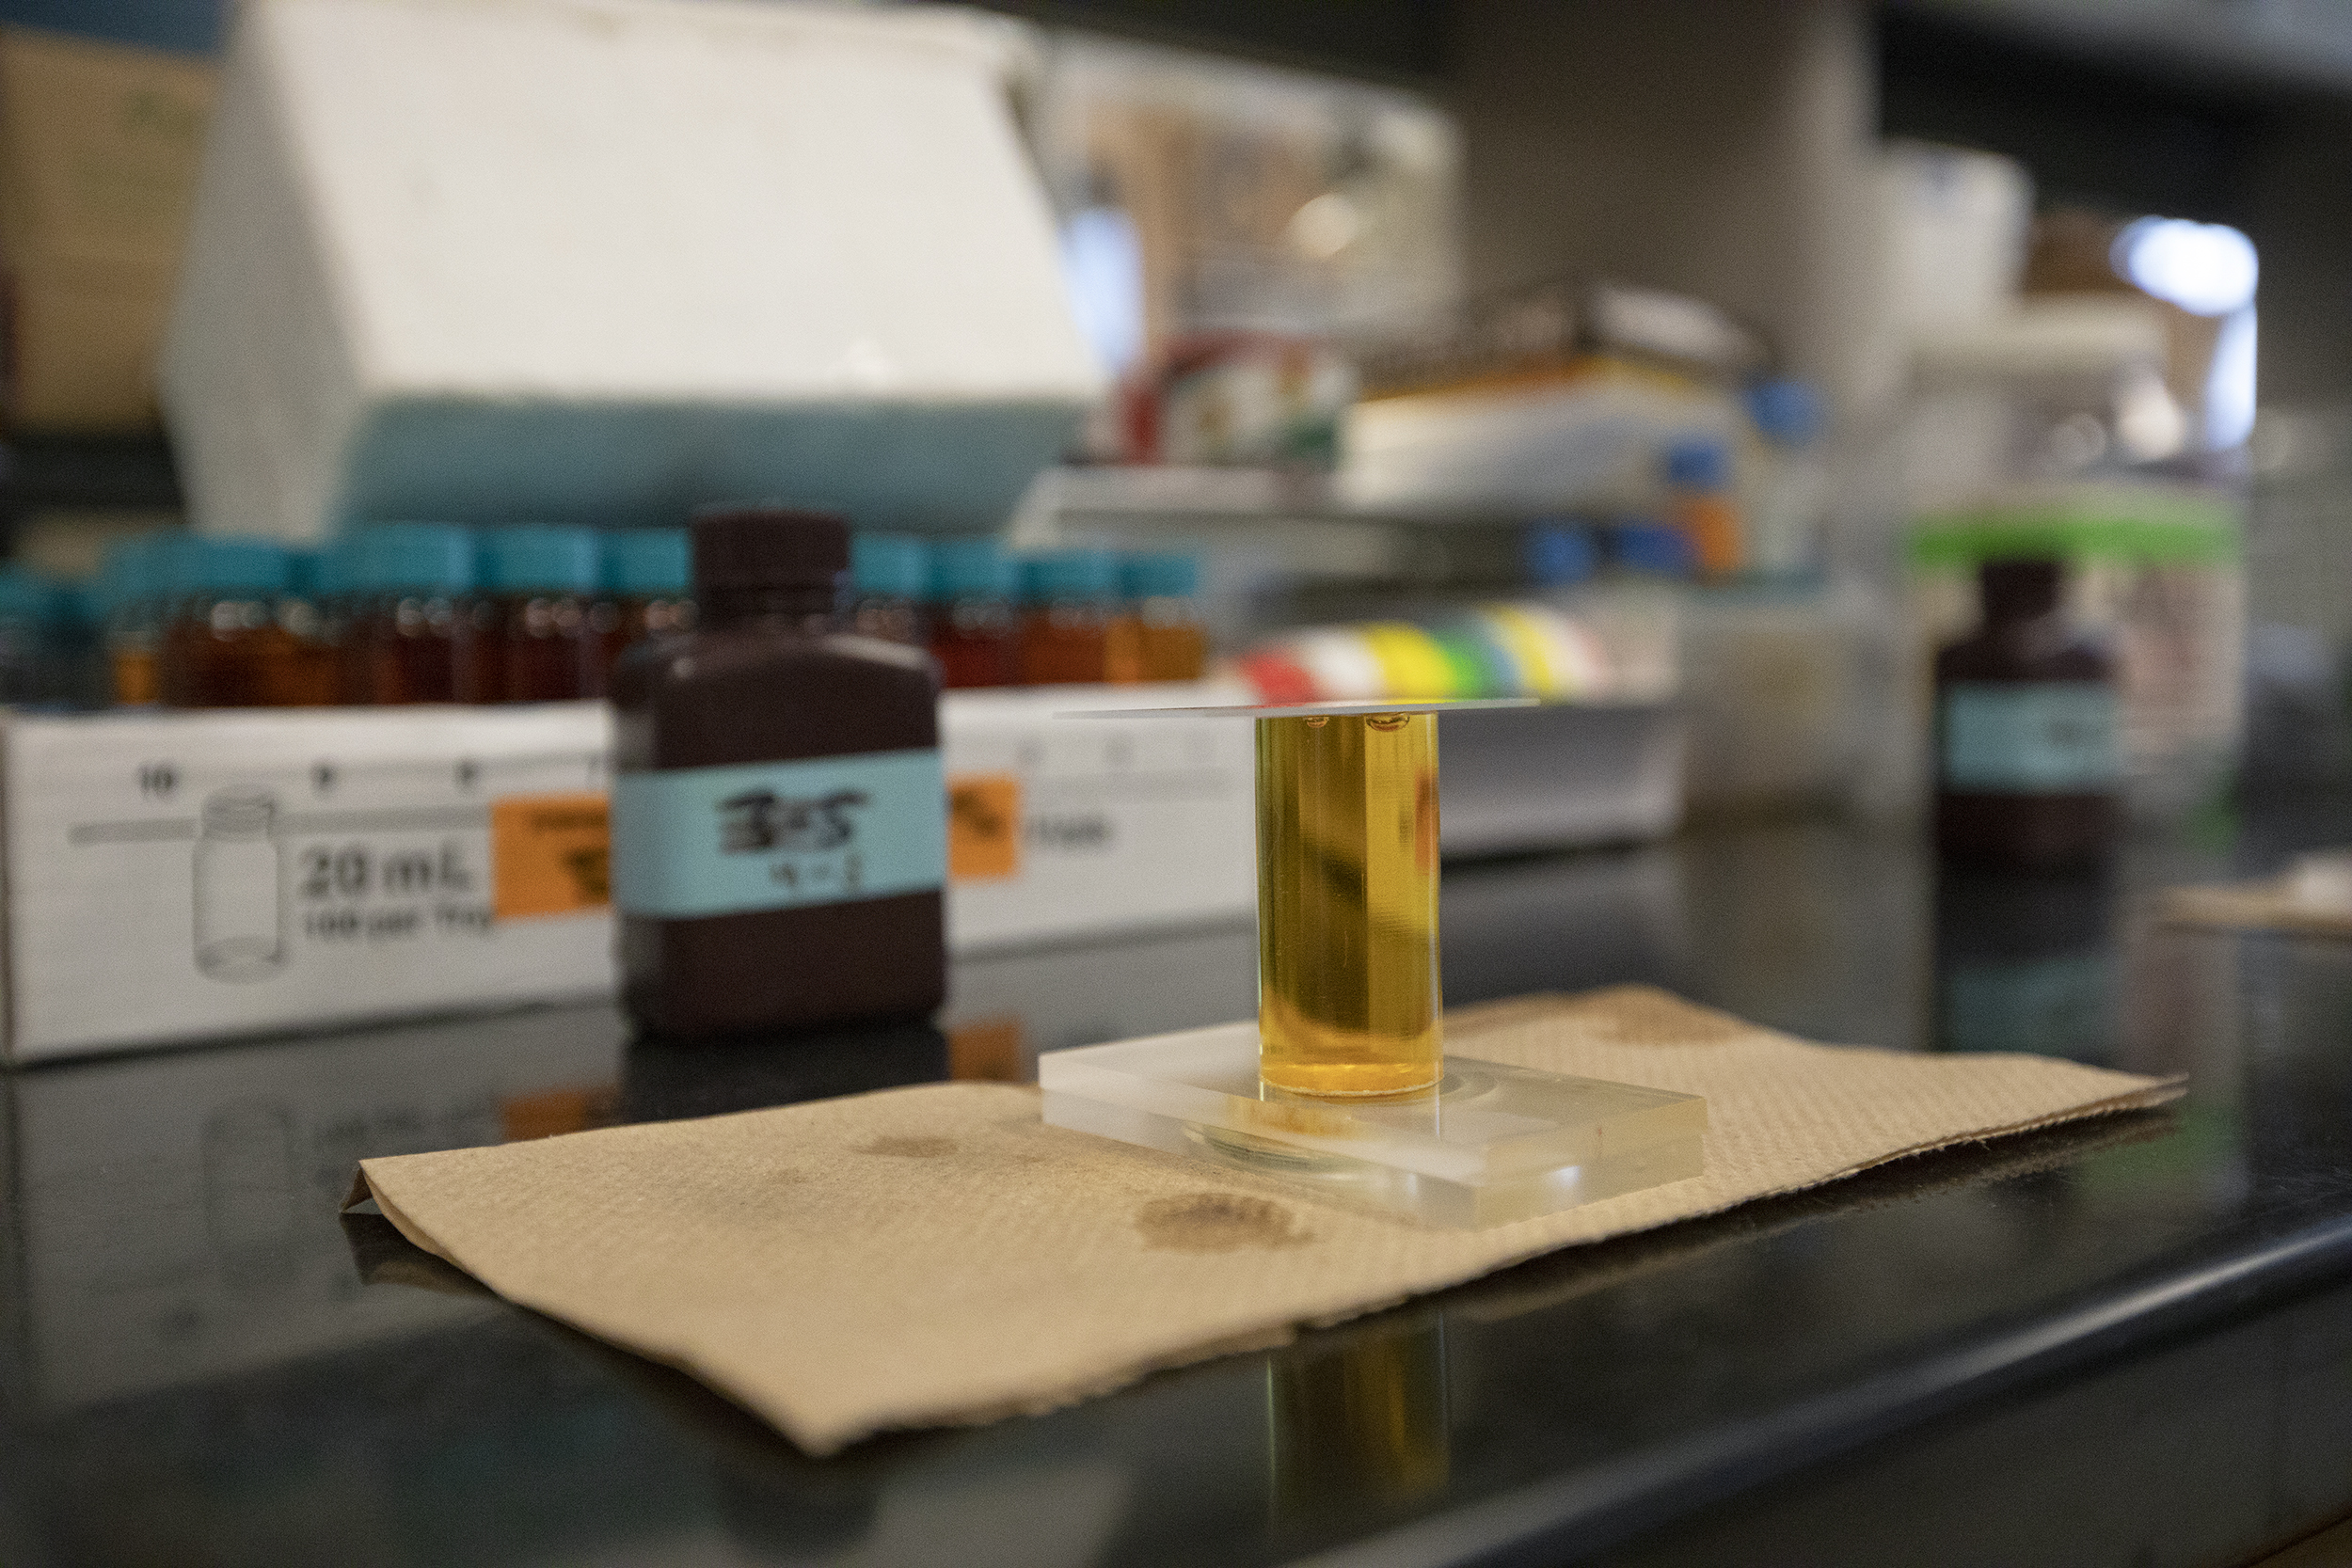 A clear cylinder filled with yellow liquid sits on a laboratory work station table.